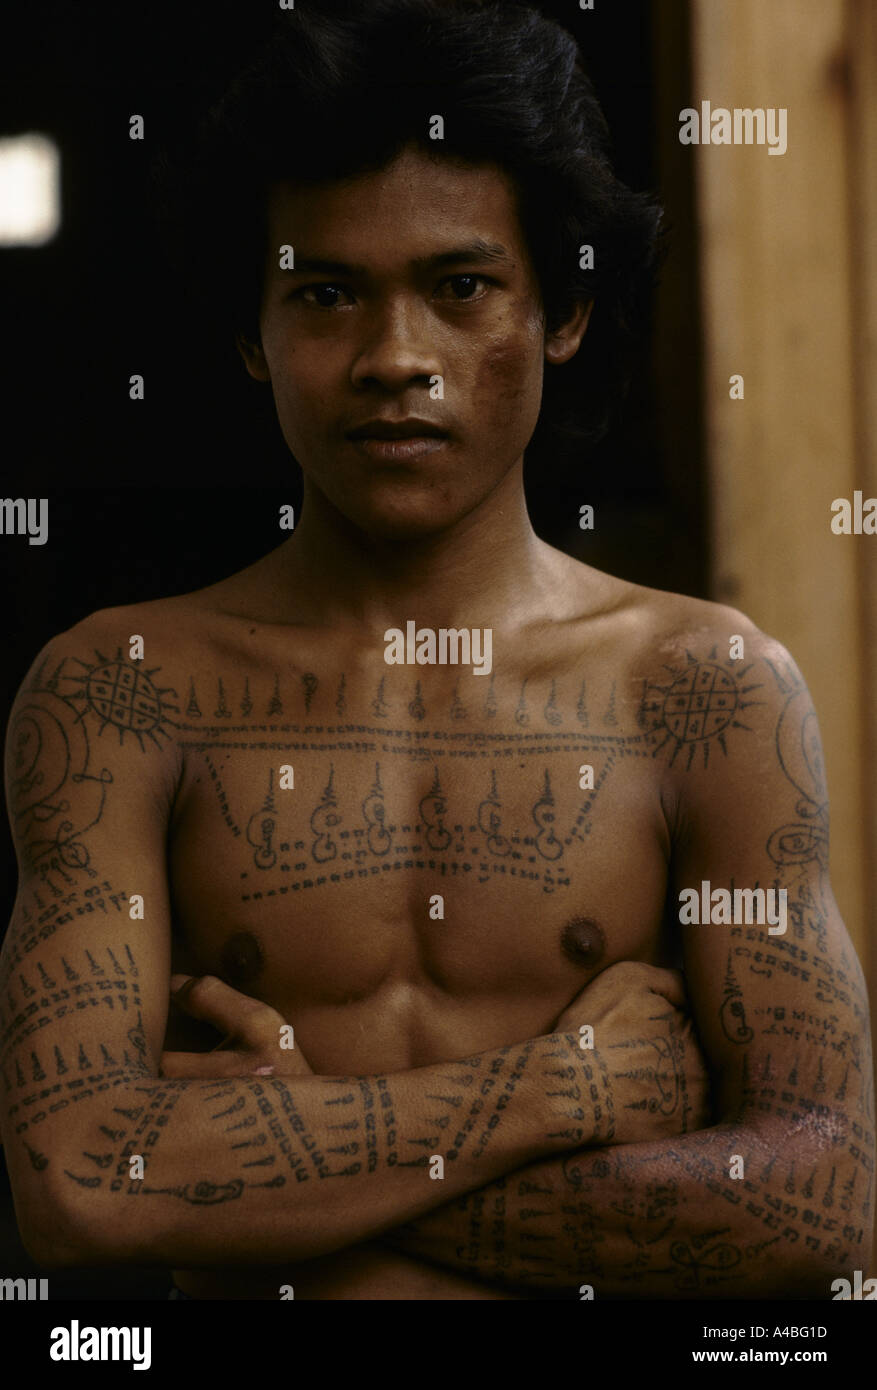 The Teenaner He Has Traditional Khmer Tatoos On His Chest Yantra Tattooing Also Called Sak Yant Ancient Script Writing Tattoos Are Believed